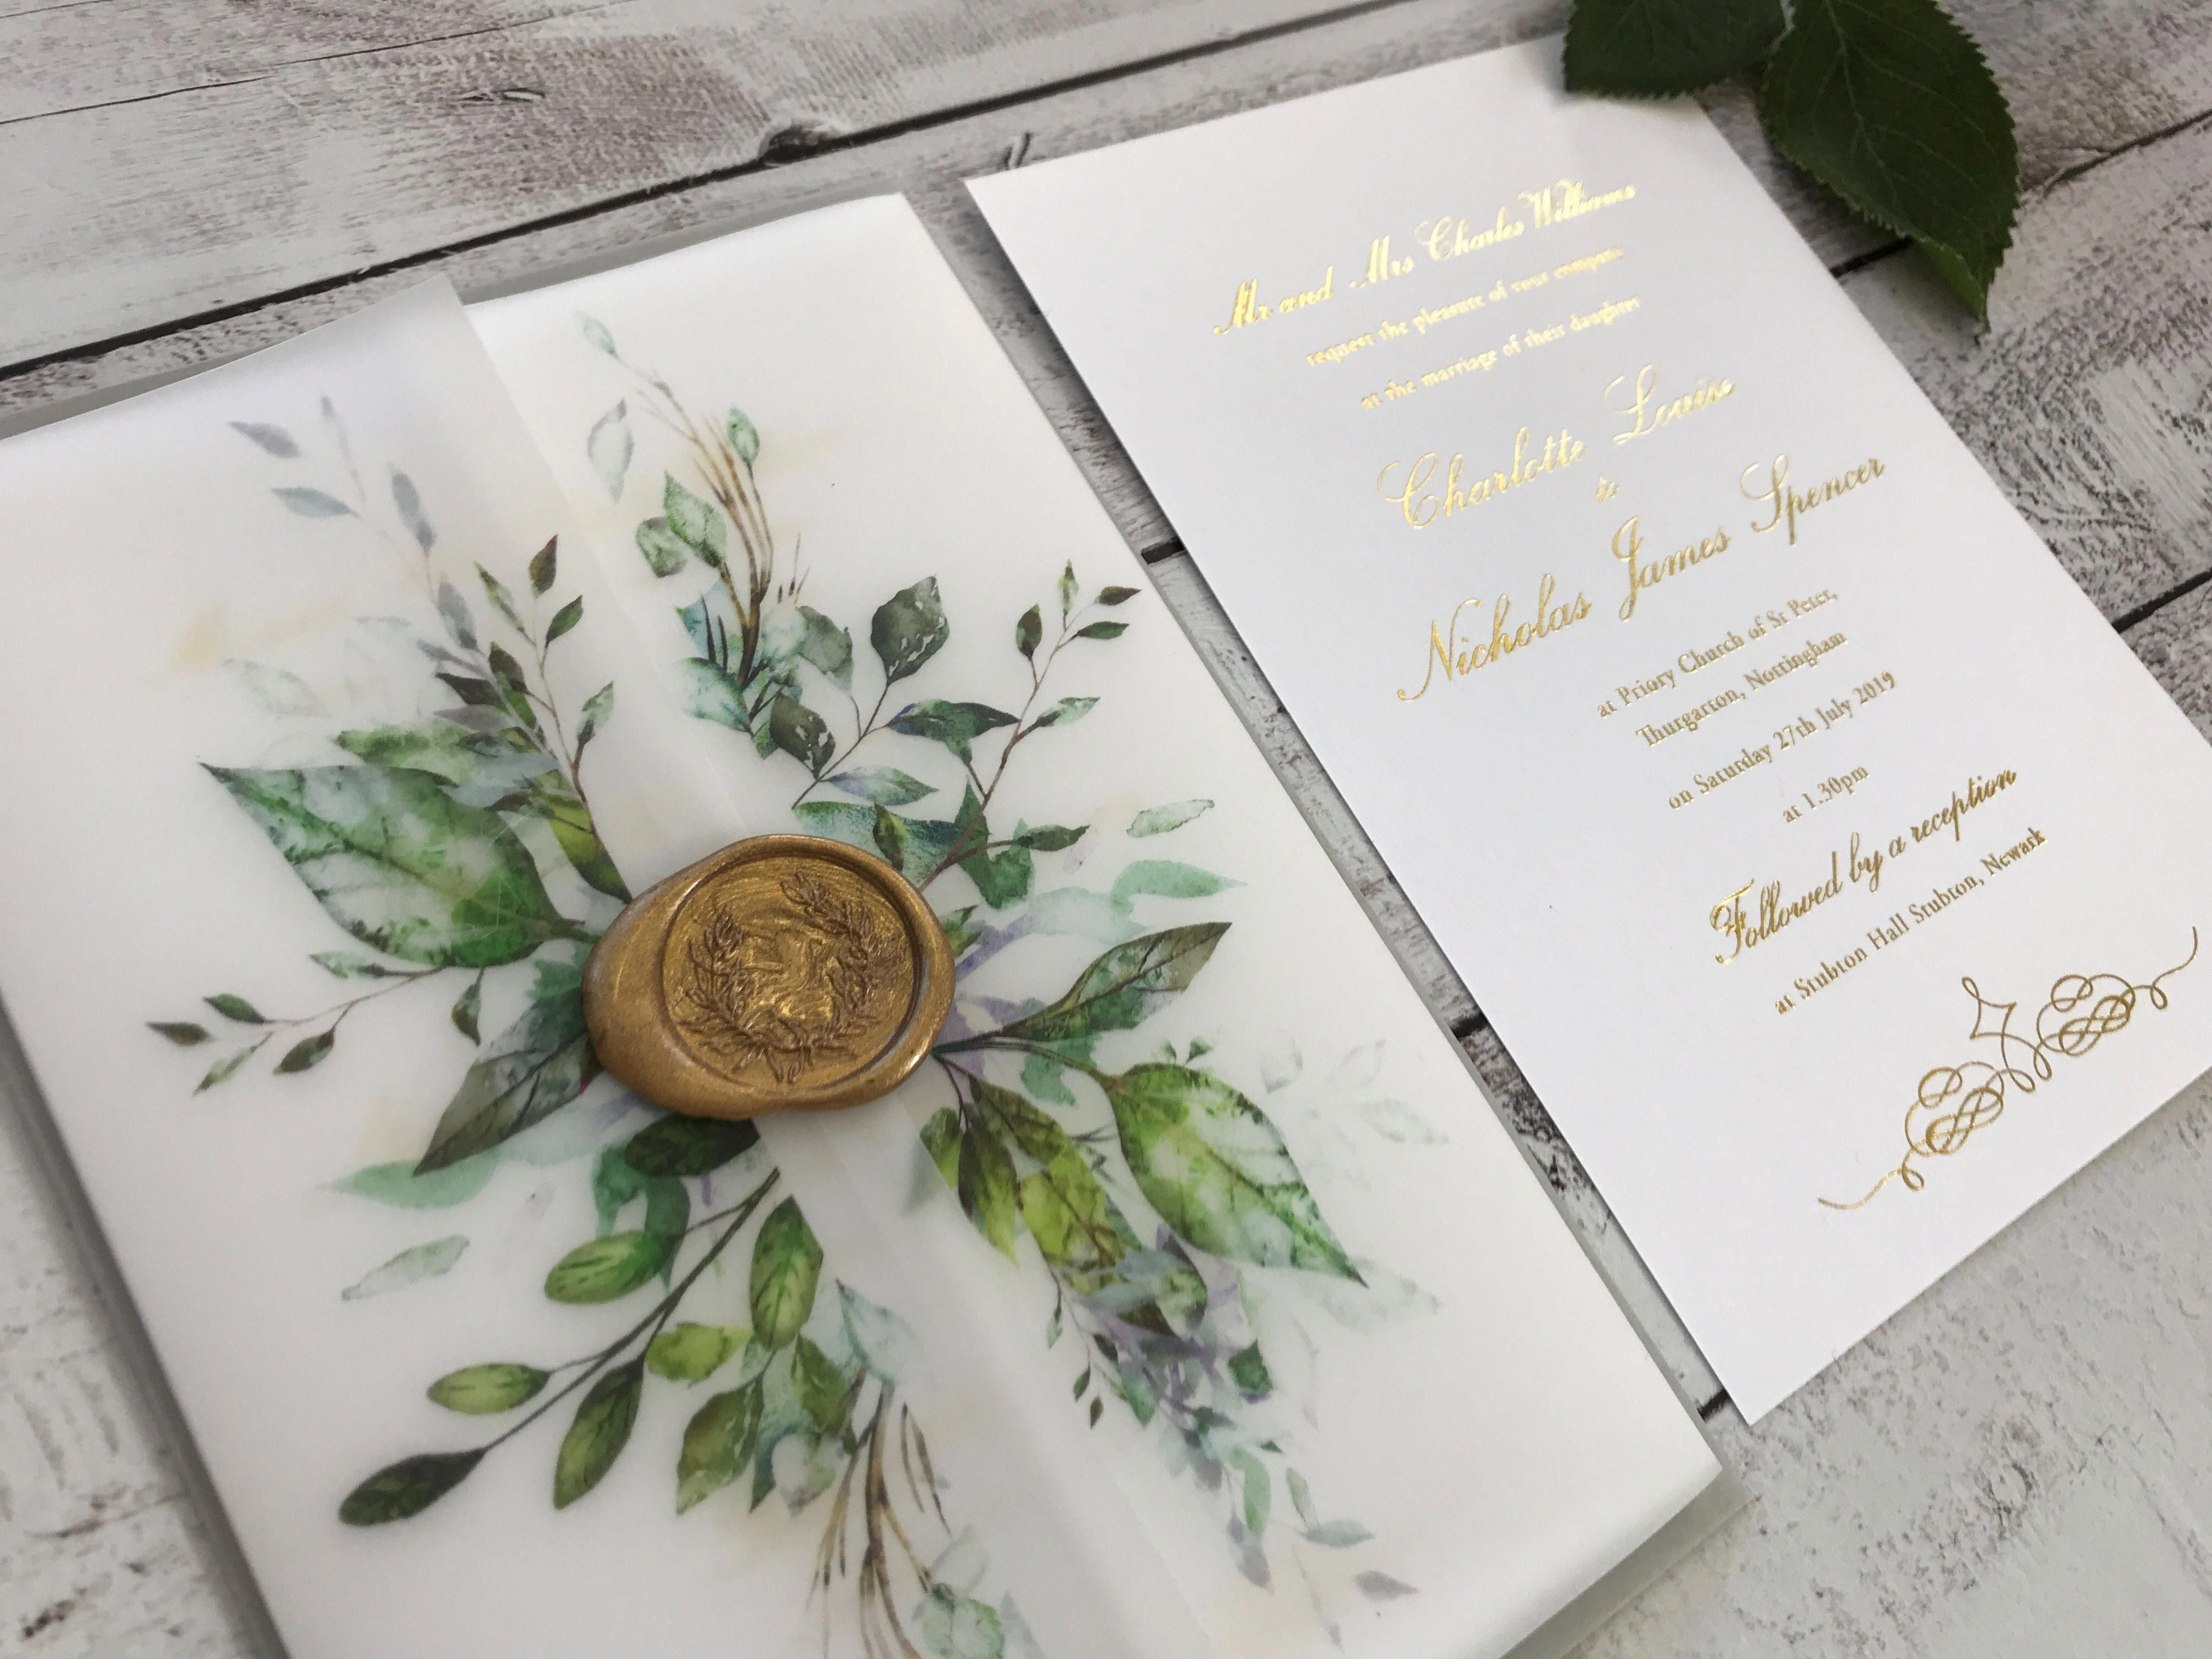 Foiled Wedding Invitations With Green